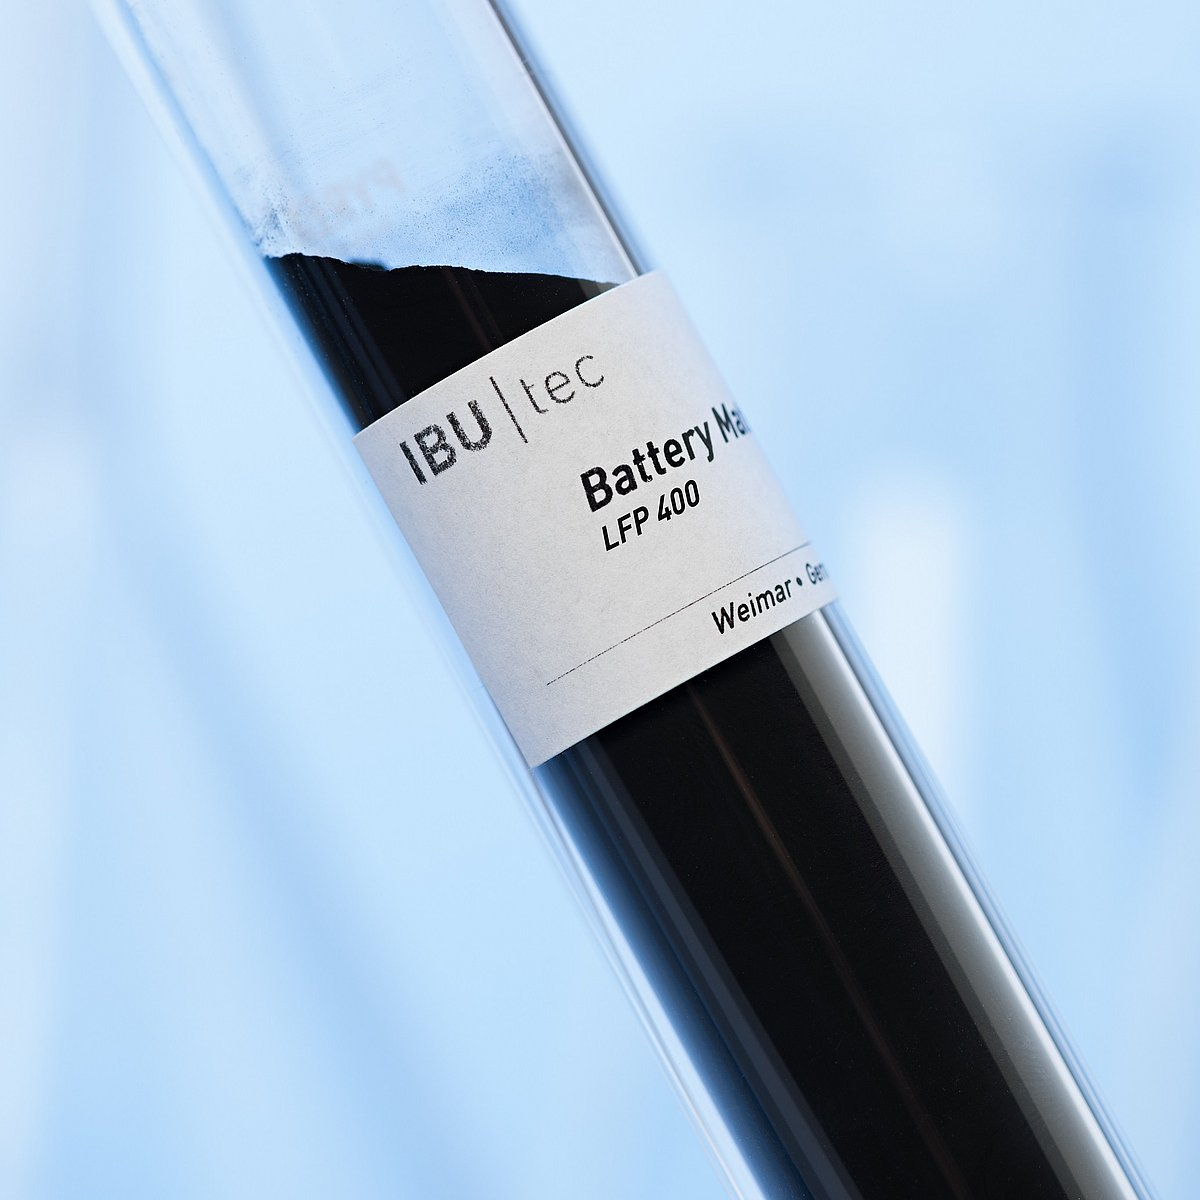 Lithium Iron Phosphate LFP 400 is a battery material produced by IBU-tec